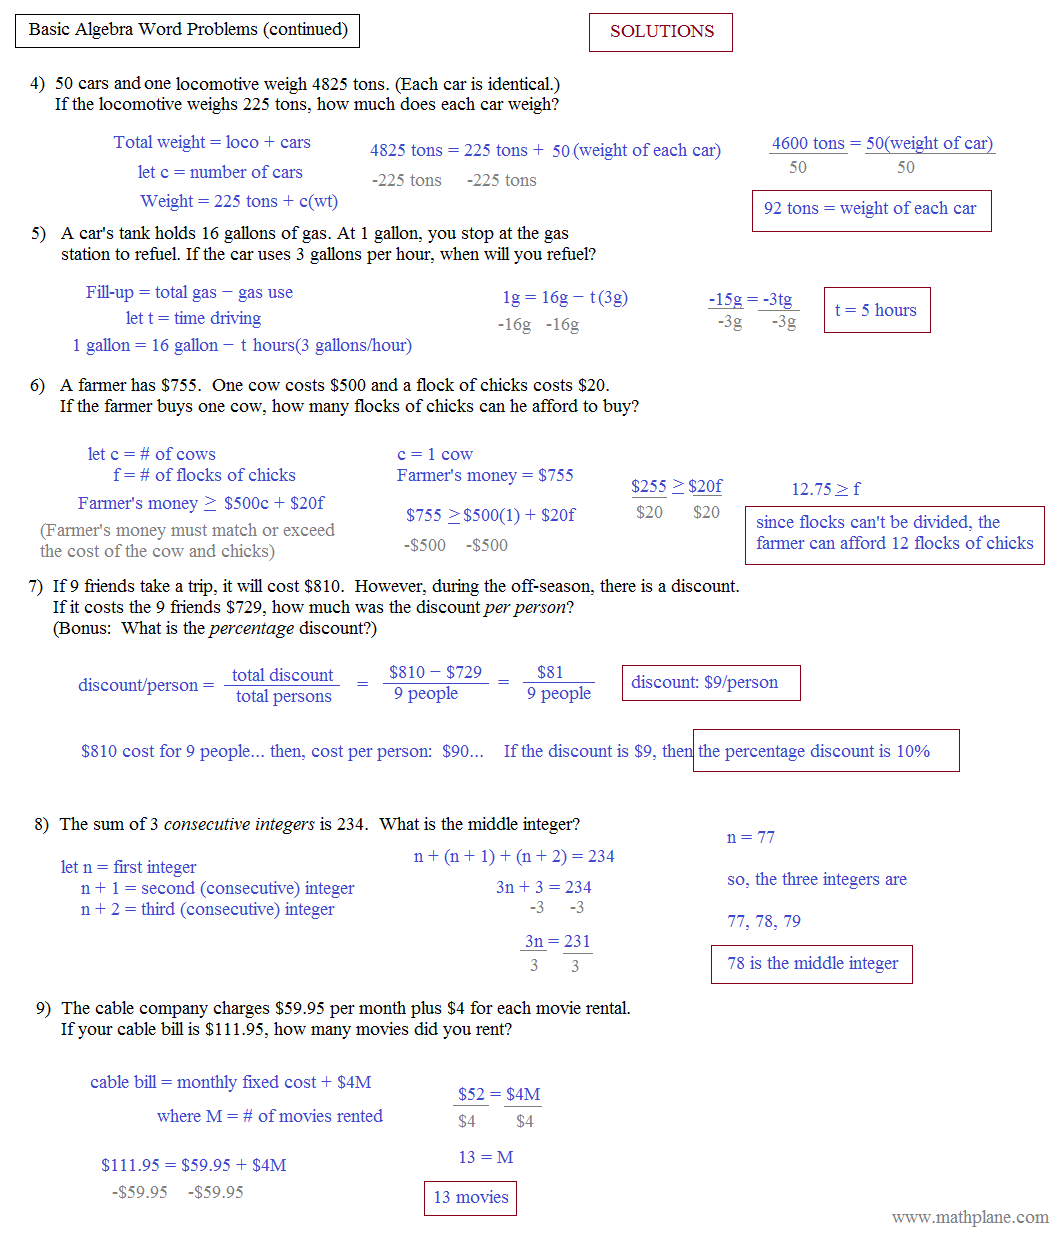 Worksheets Distance Formula Word Problems With Solutions math plane algebra word problems basic 2 solutions